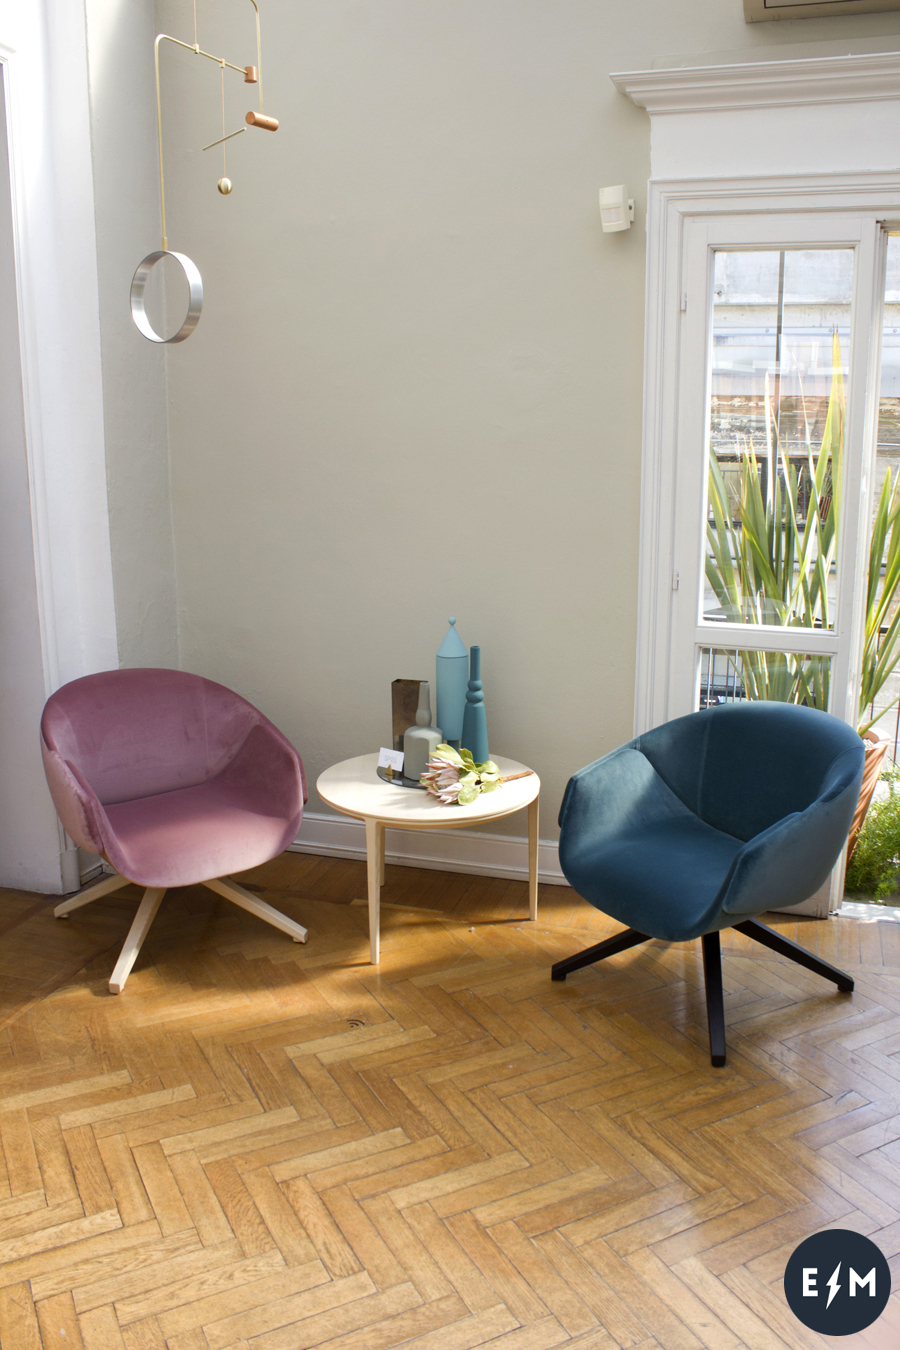 Fuorisalone 2017 - Archiproducts - Anita armchair by SP01